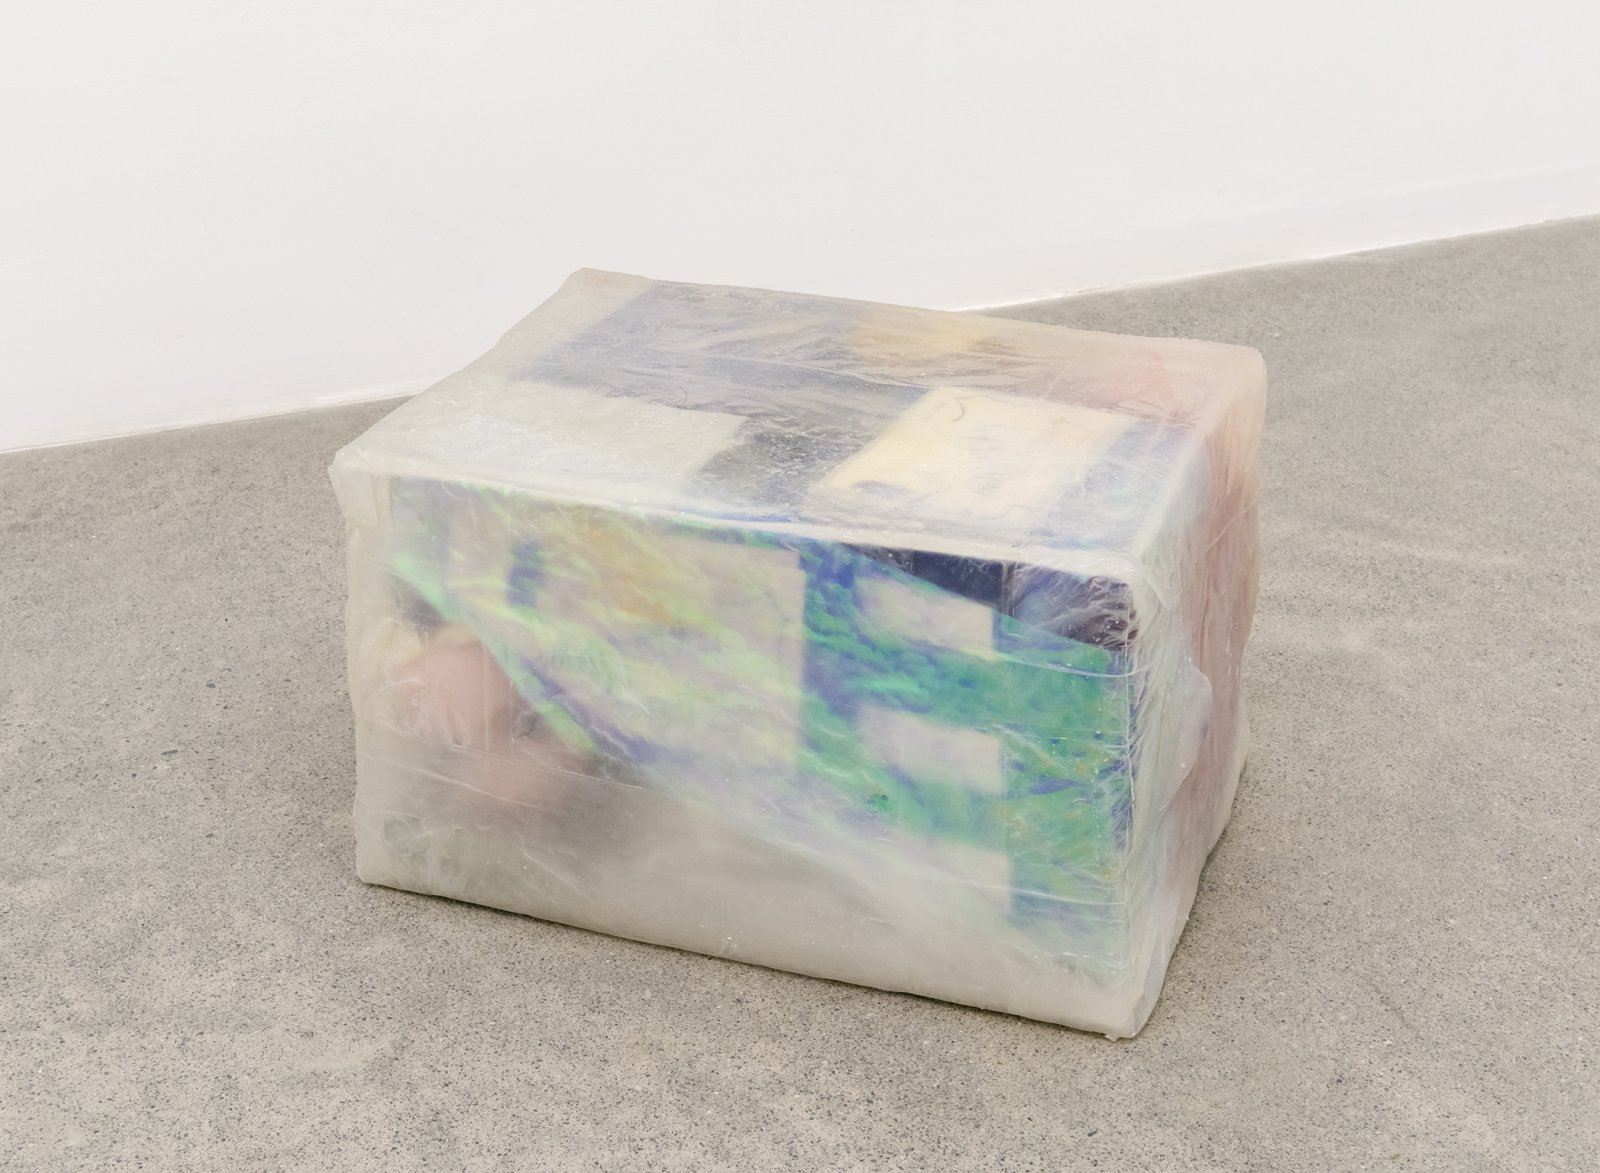 Liz Magor, All The Names (Head), 2016, silicone rubber, miscellaneous objects, 11 x 18 x 13 in. (27 x 45 x 33 cm) by Liz Magor